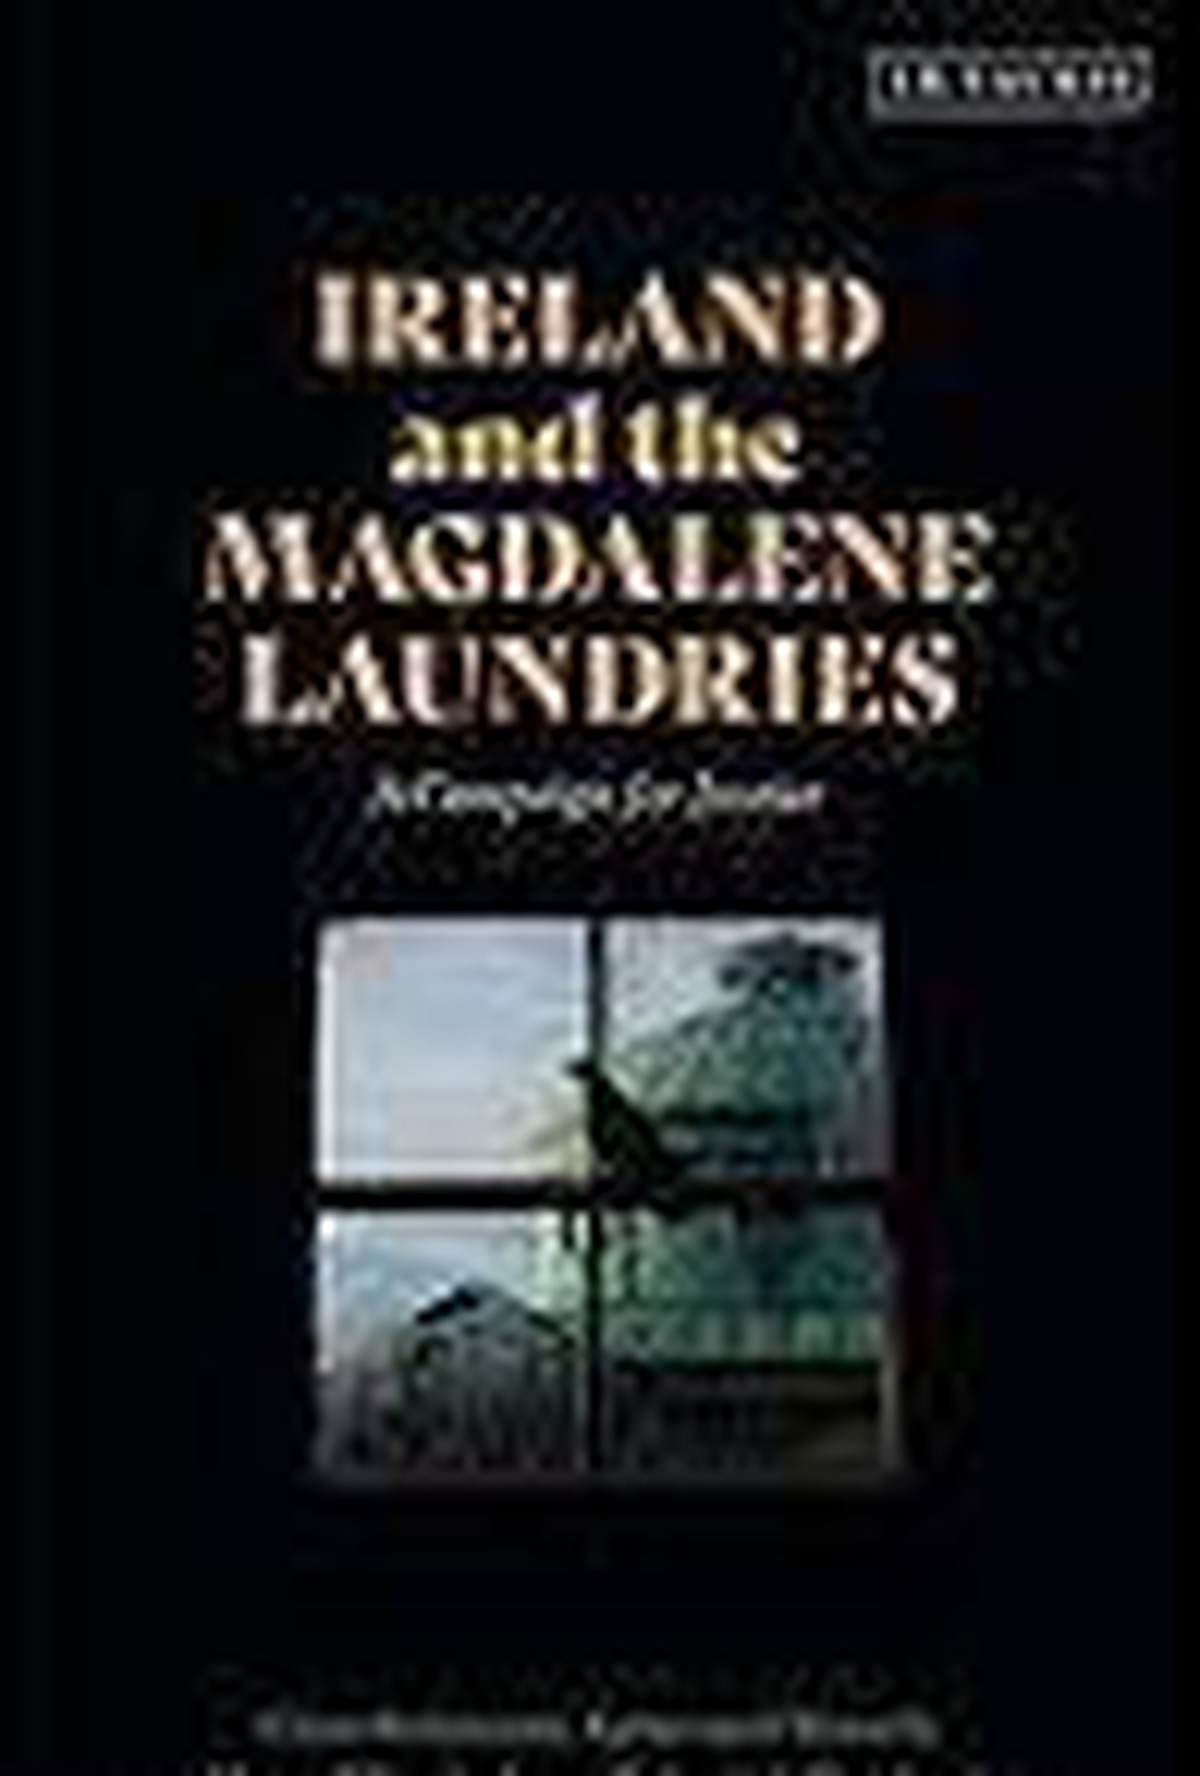 Ireland and the Magdalene Laundries -  A Campaign for Justice